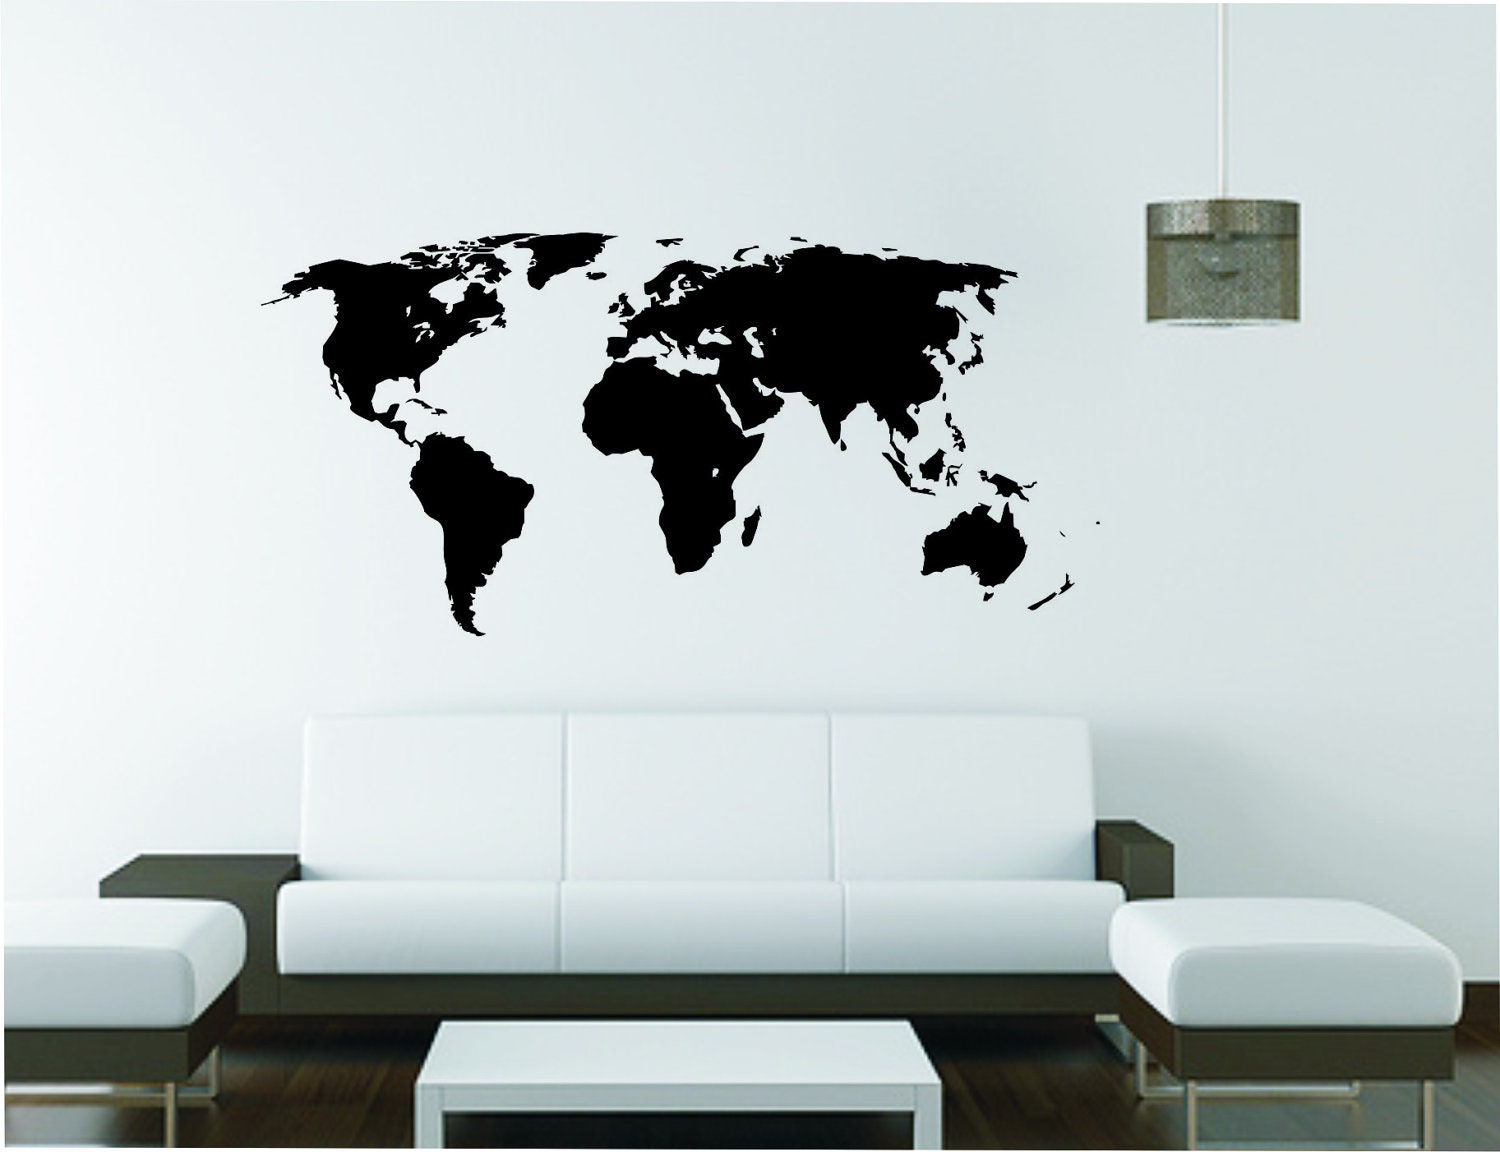 extra large world map wall sticker vinyl decal wall tattoo. Black Bedroom Furniture Sets. Home Design Ideas